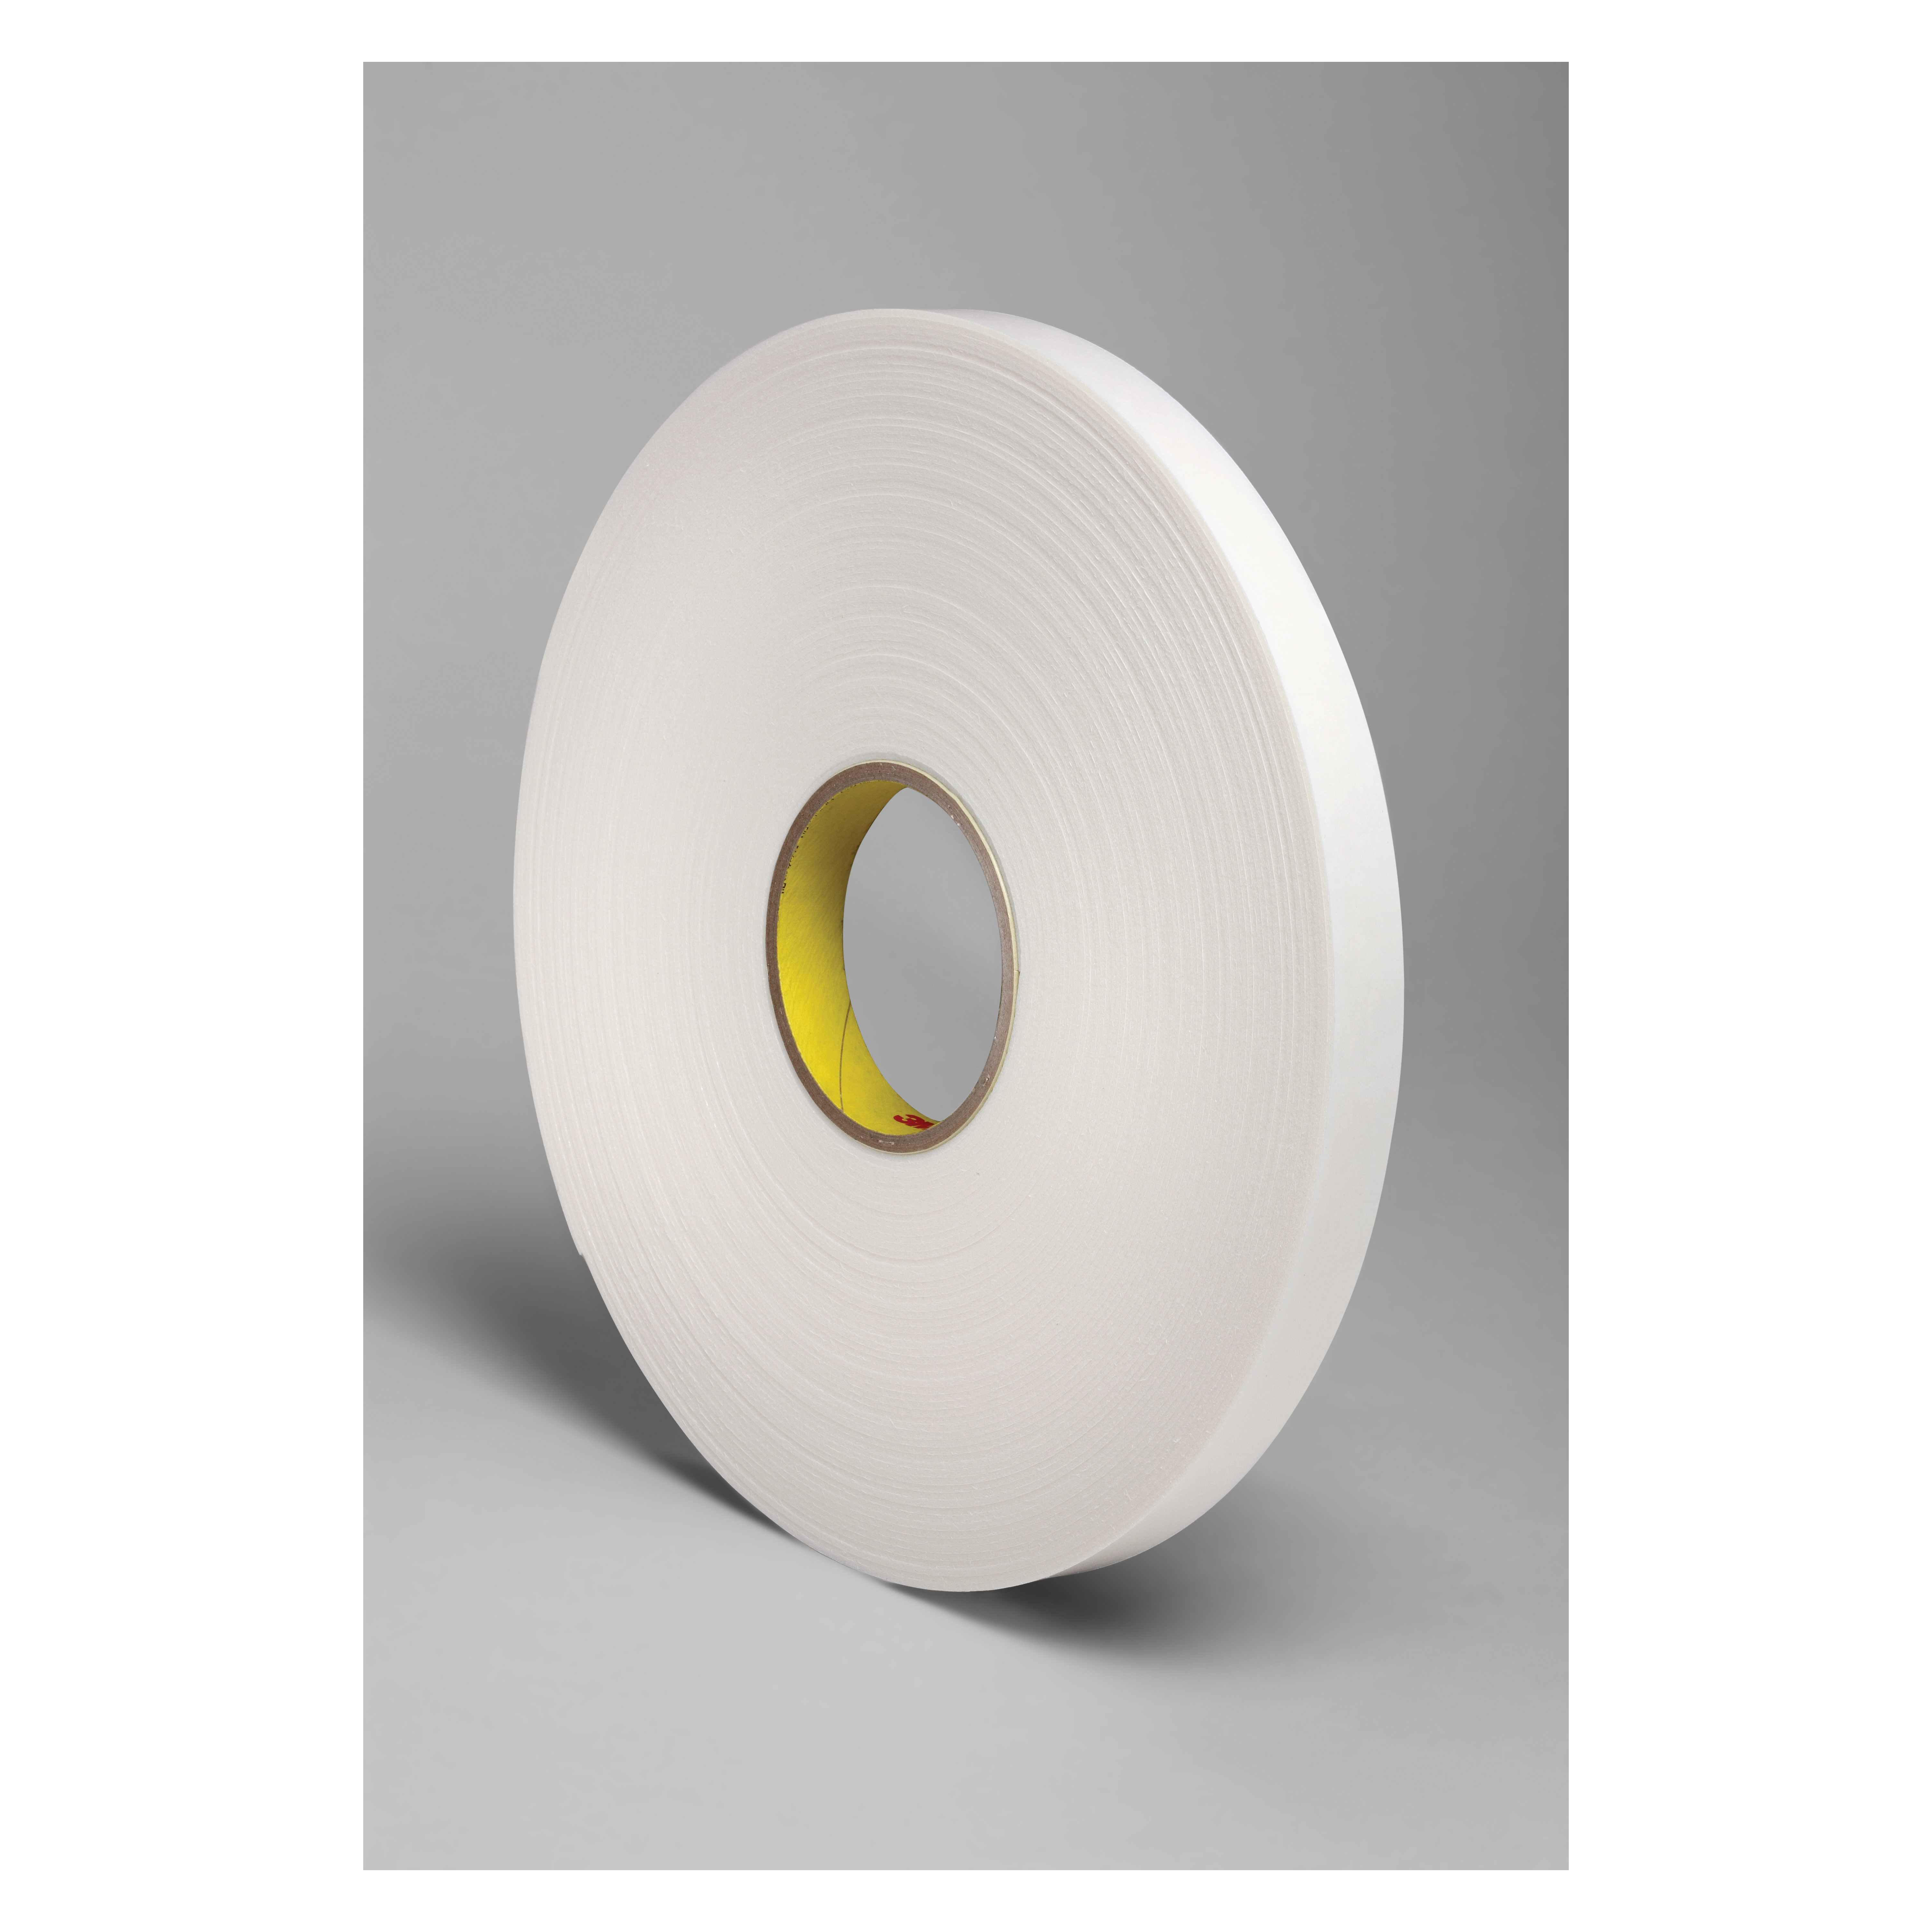 3M™ 021200-24303 Double Coated Tape, 36 yd L x 3/4 in W, 62 mil THK, Rubber Adhesive, Polyethylene Foam Backing, White